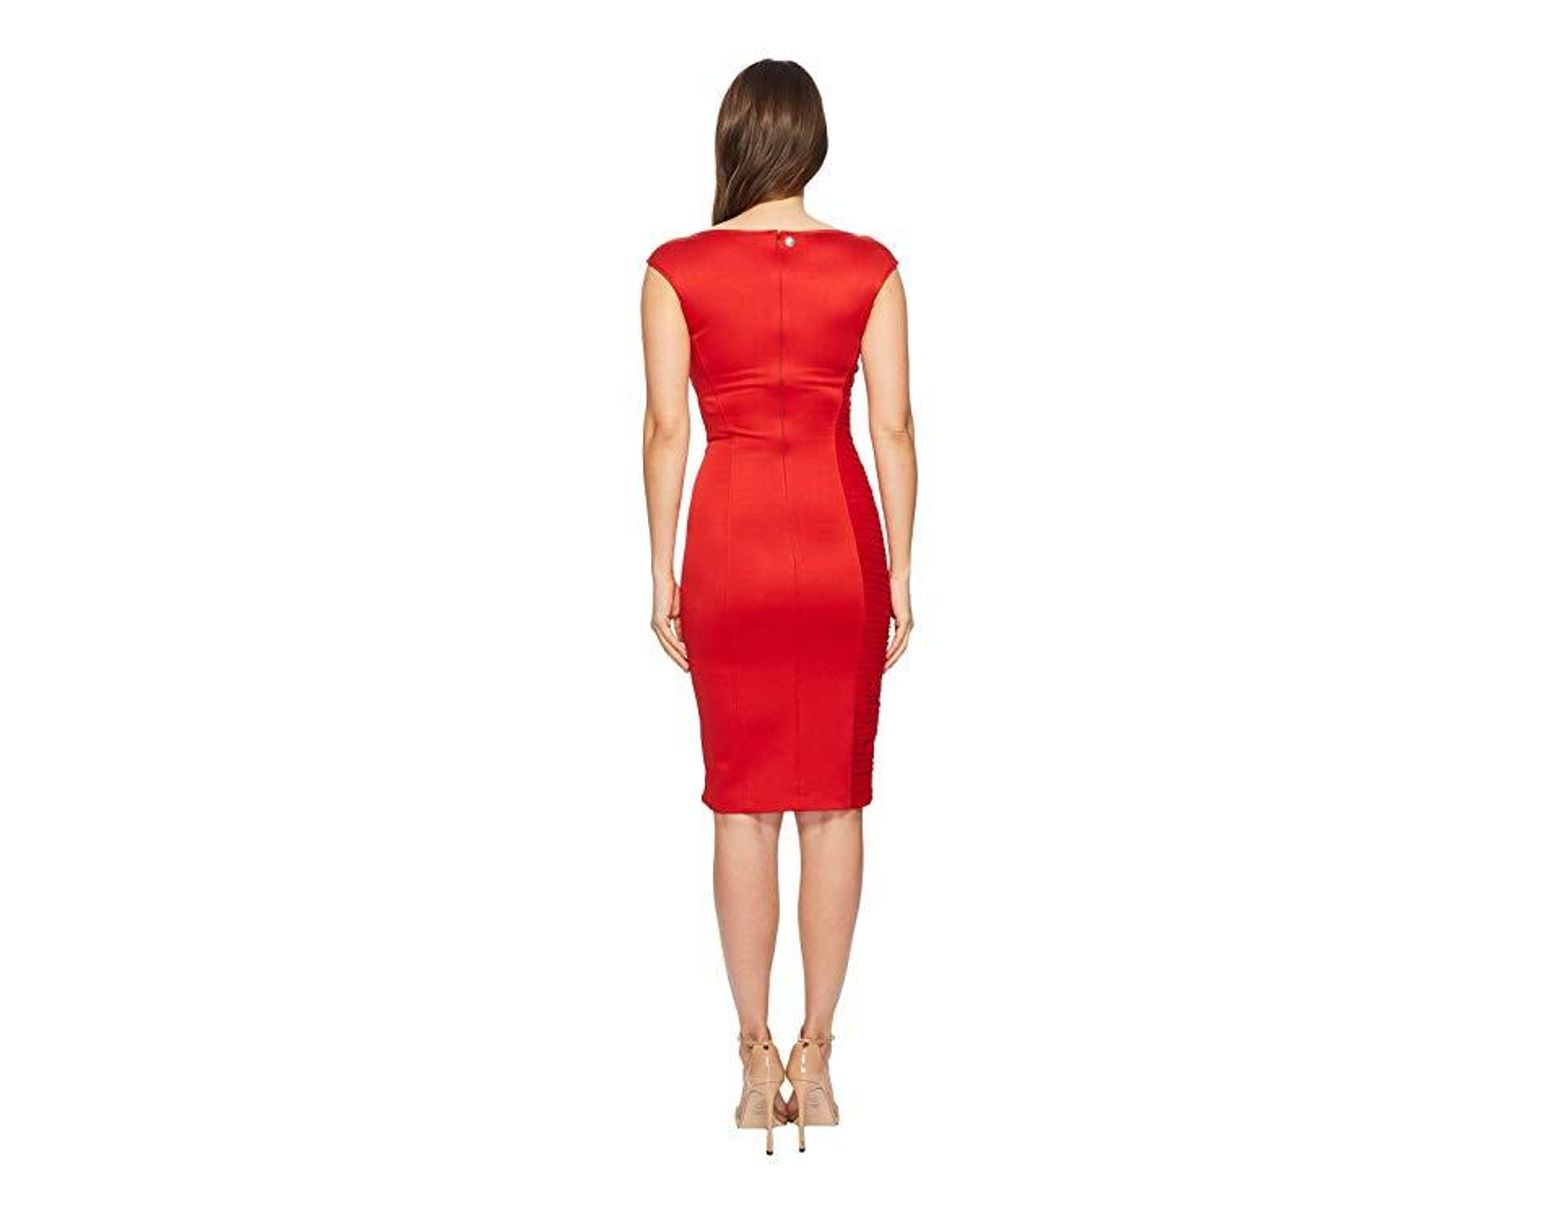 996865f22ce5 Versace Abito Donna Asymmetrical Zip Sheath Dress (rosso) Clothing in Red -  Save 75% - Lyst